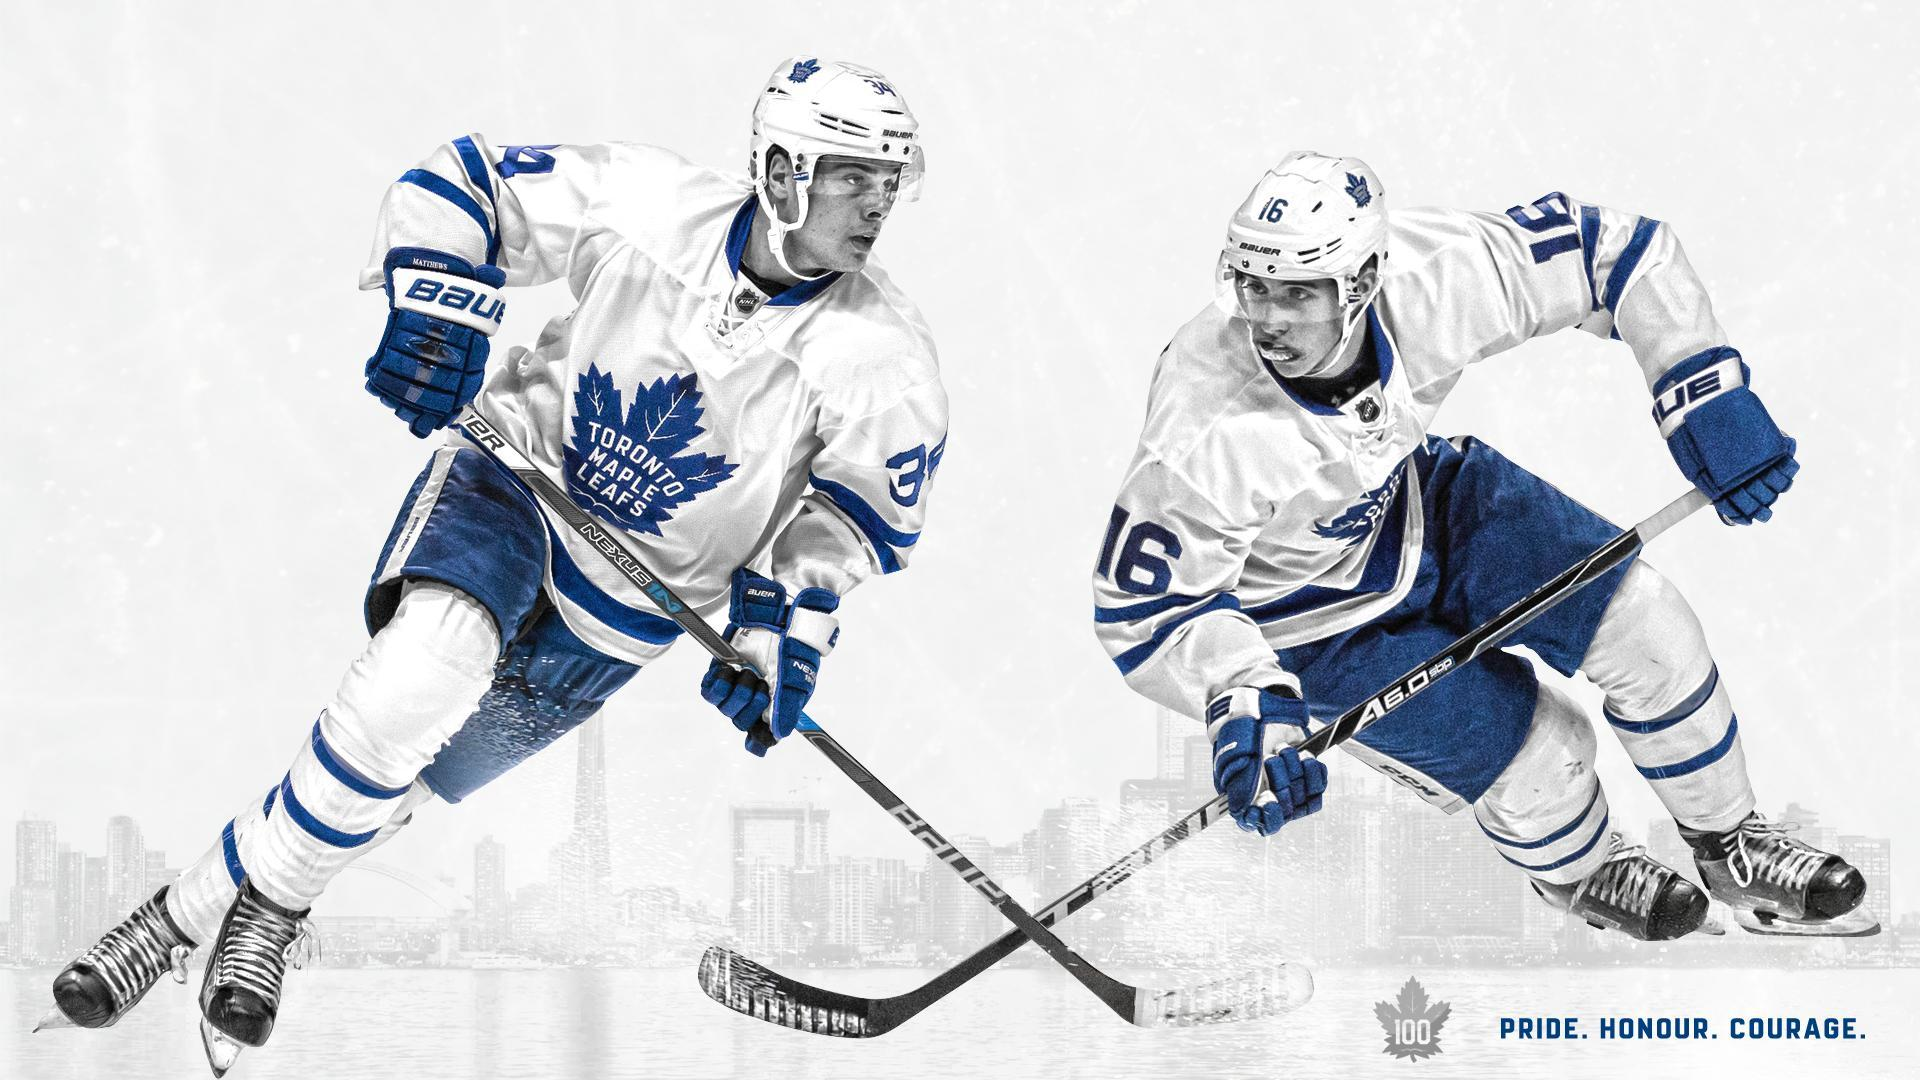 By request, here's a Matthews and Marner wallpaper! Happy